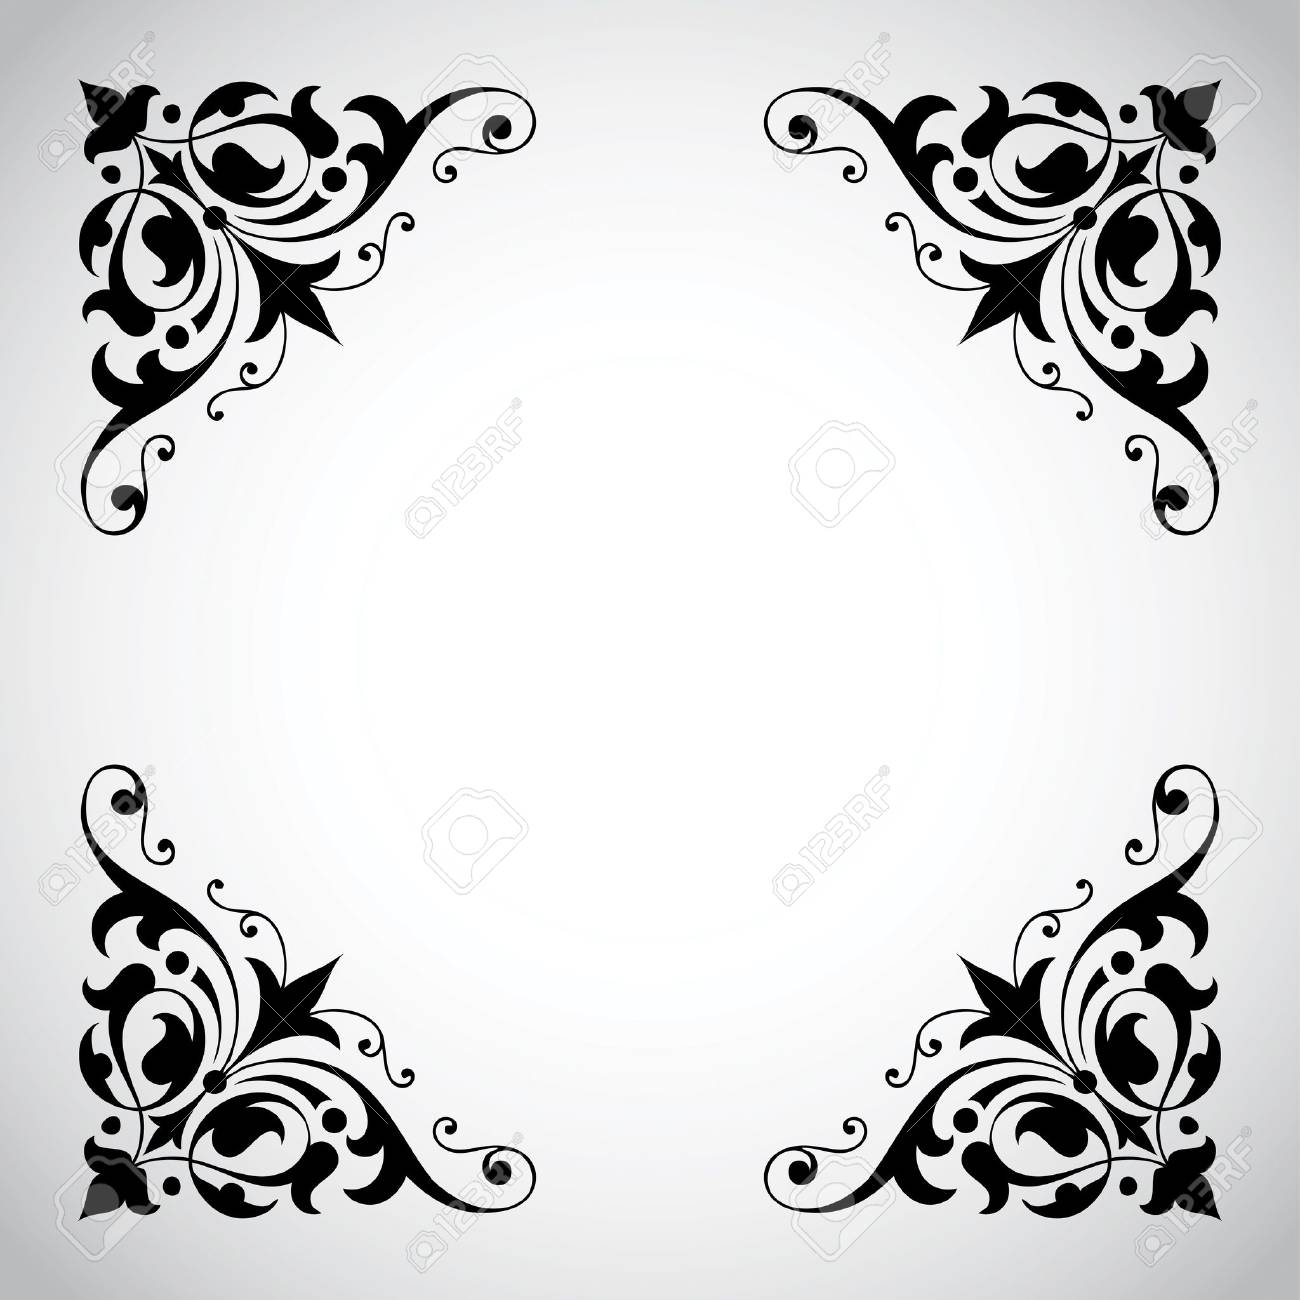 Decorative Vintage Frame with Copy Space - 9867908